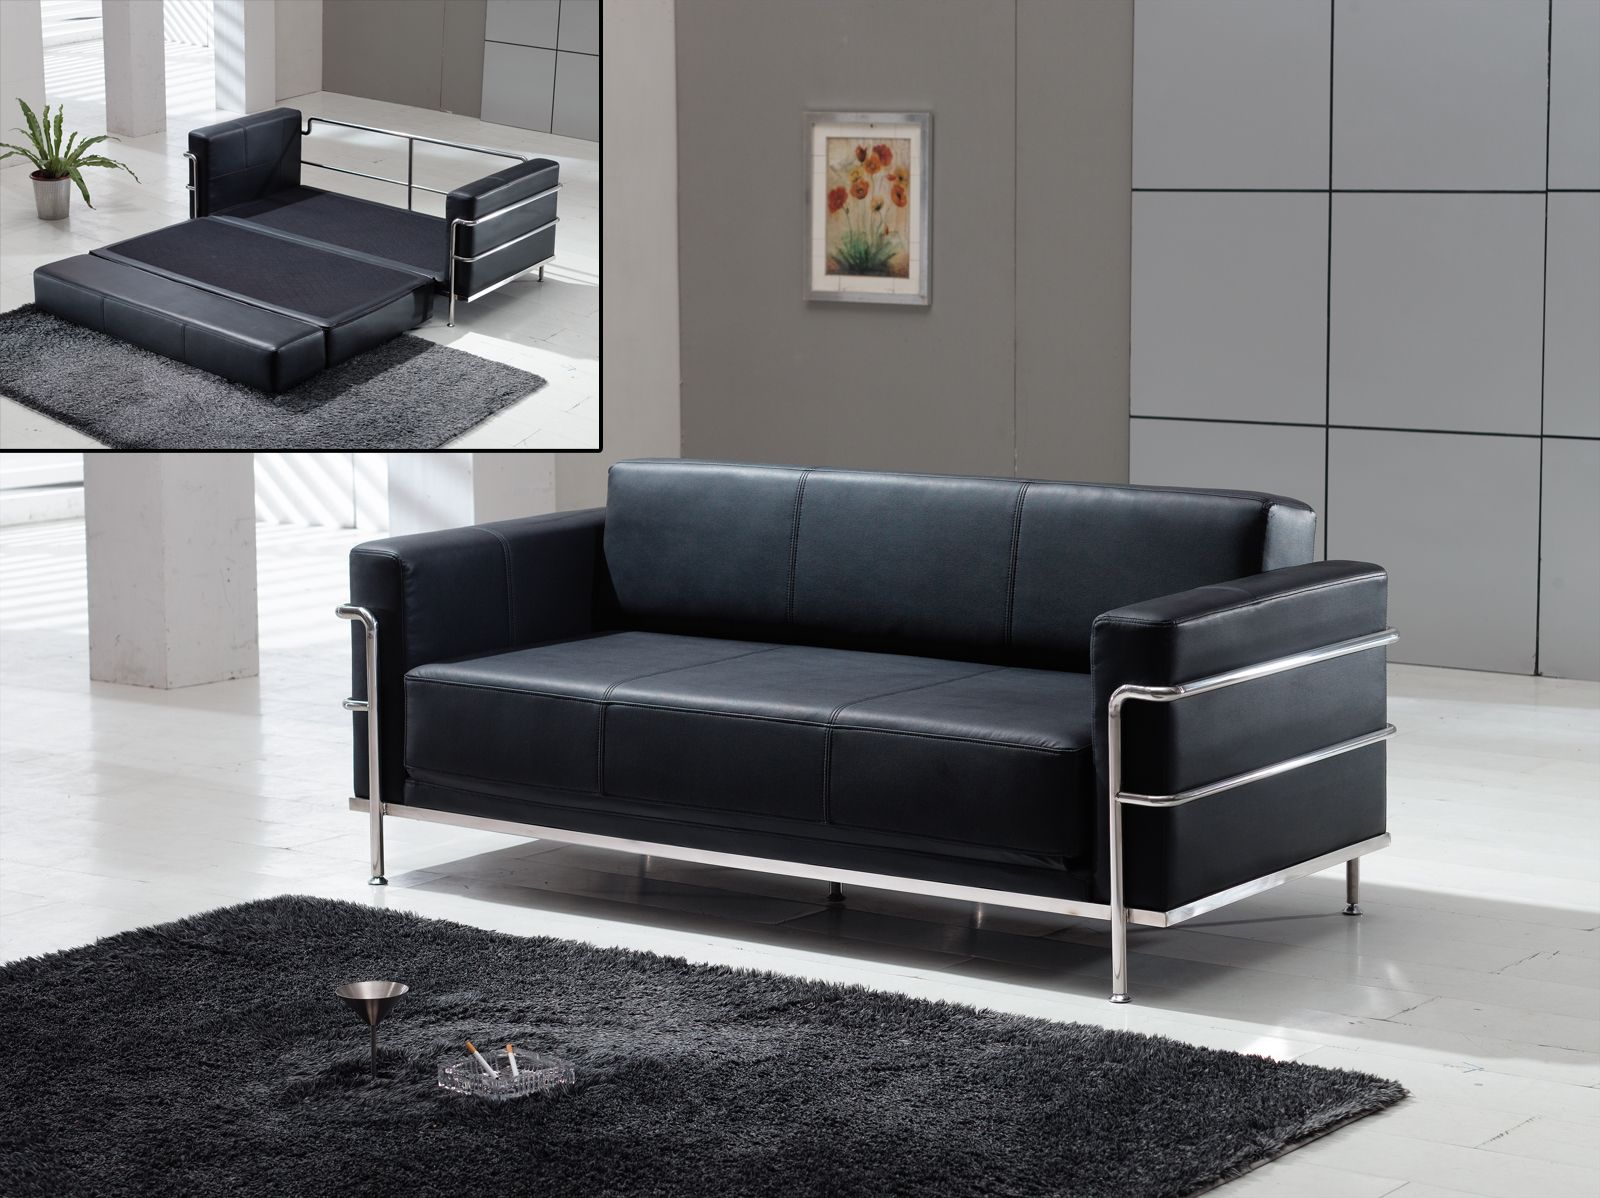 magnificent different couch styles. Le Corbusier Style  Black Leather Sofa Bed Sleeper Contemporary